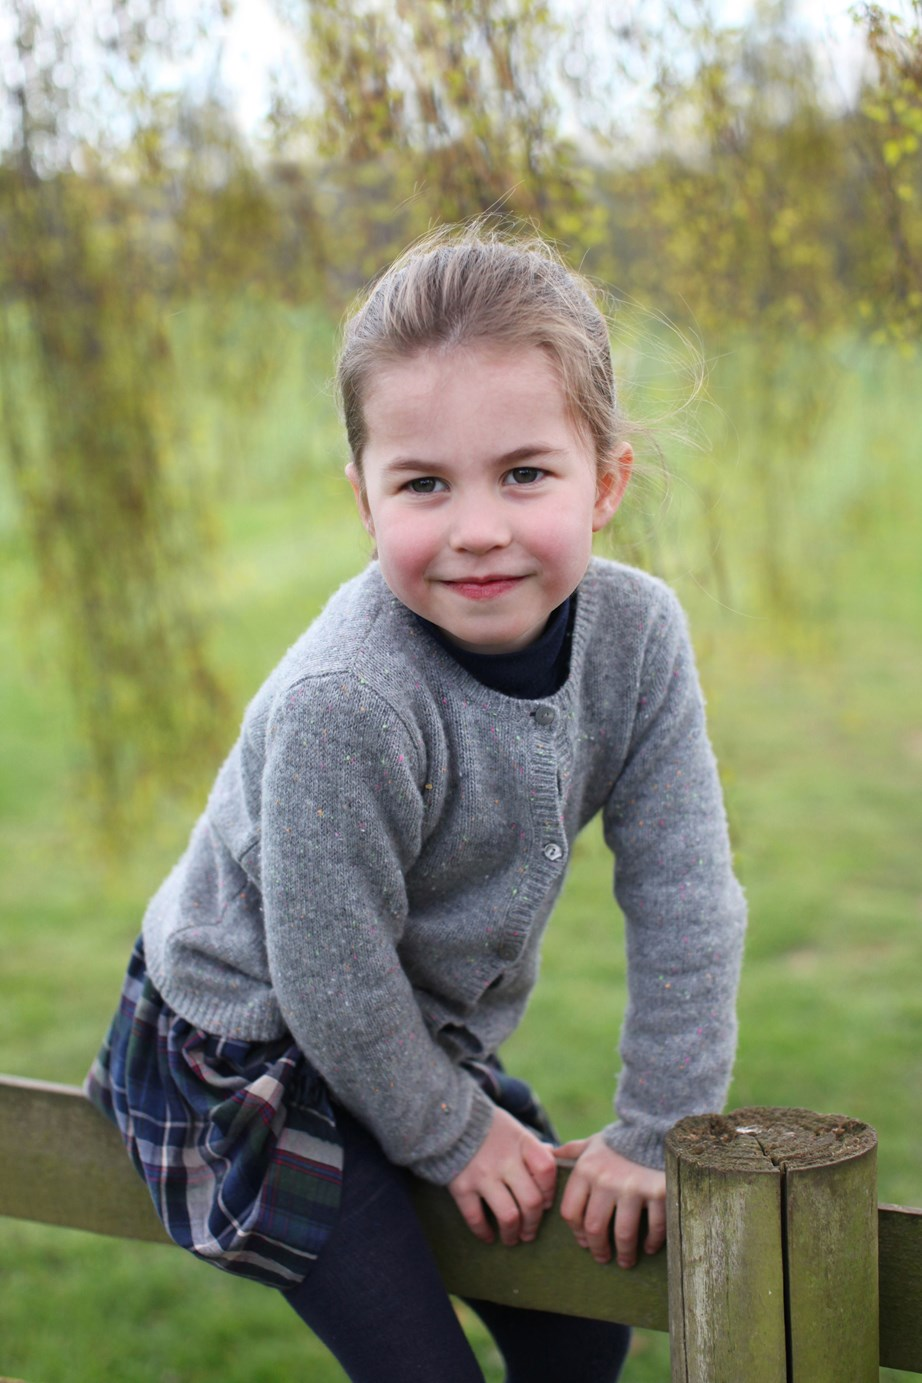 One of the gorgeous images taken by the Duchess of Cambridge of Princess Charlotte, ahead of her fourth birthday. *(Image: The Duchess of Cambridge via PA)*